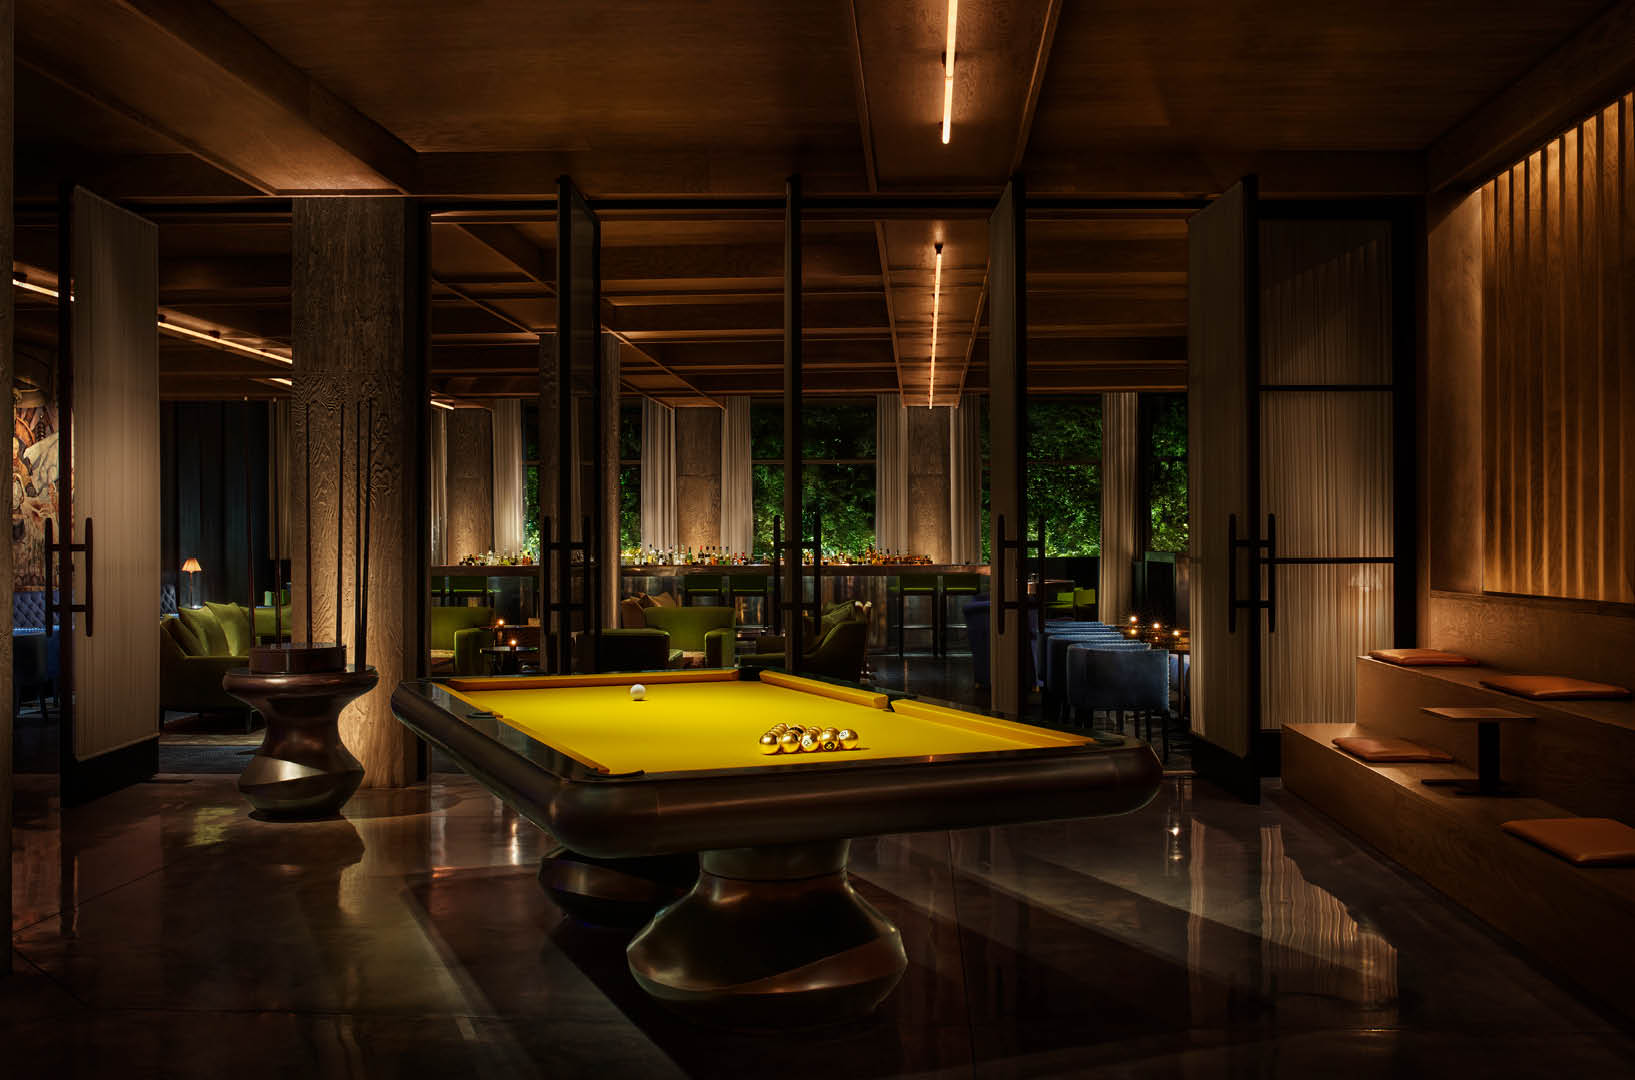 PUBLIC Hotel New York City An Ian Schrager Hotel Restaurants And - Pool table nyc